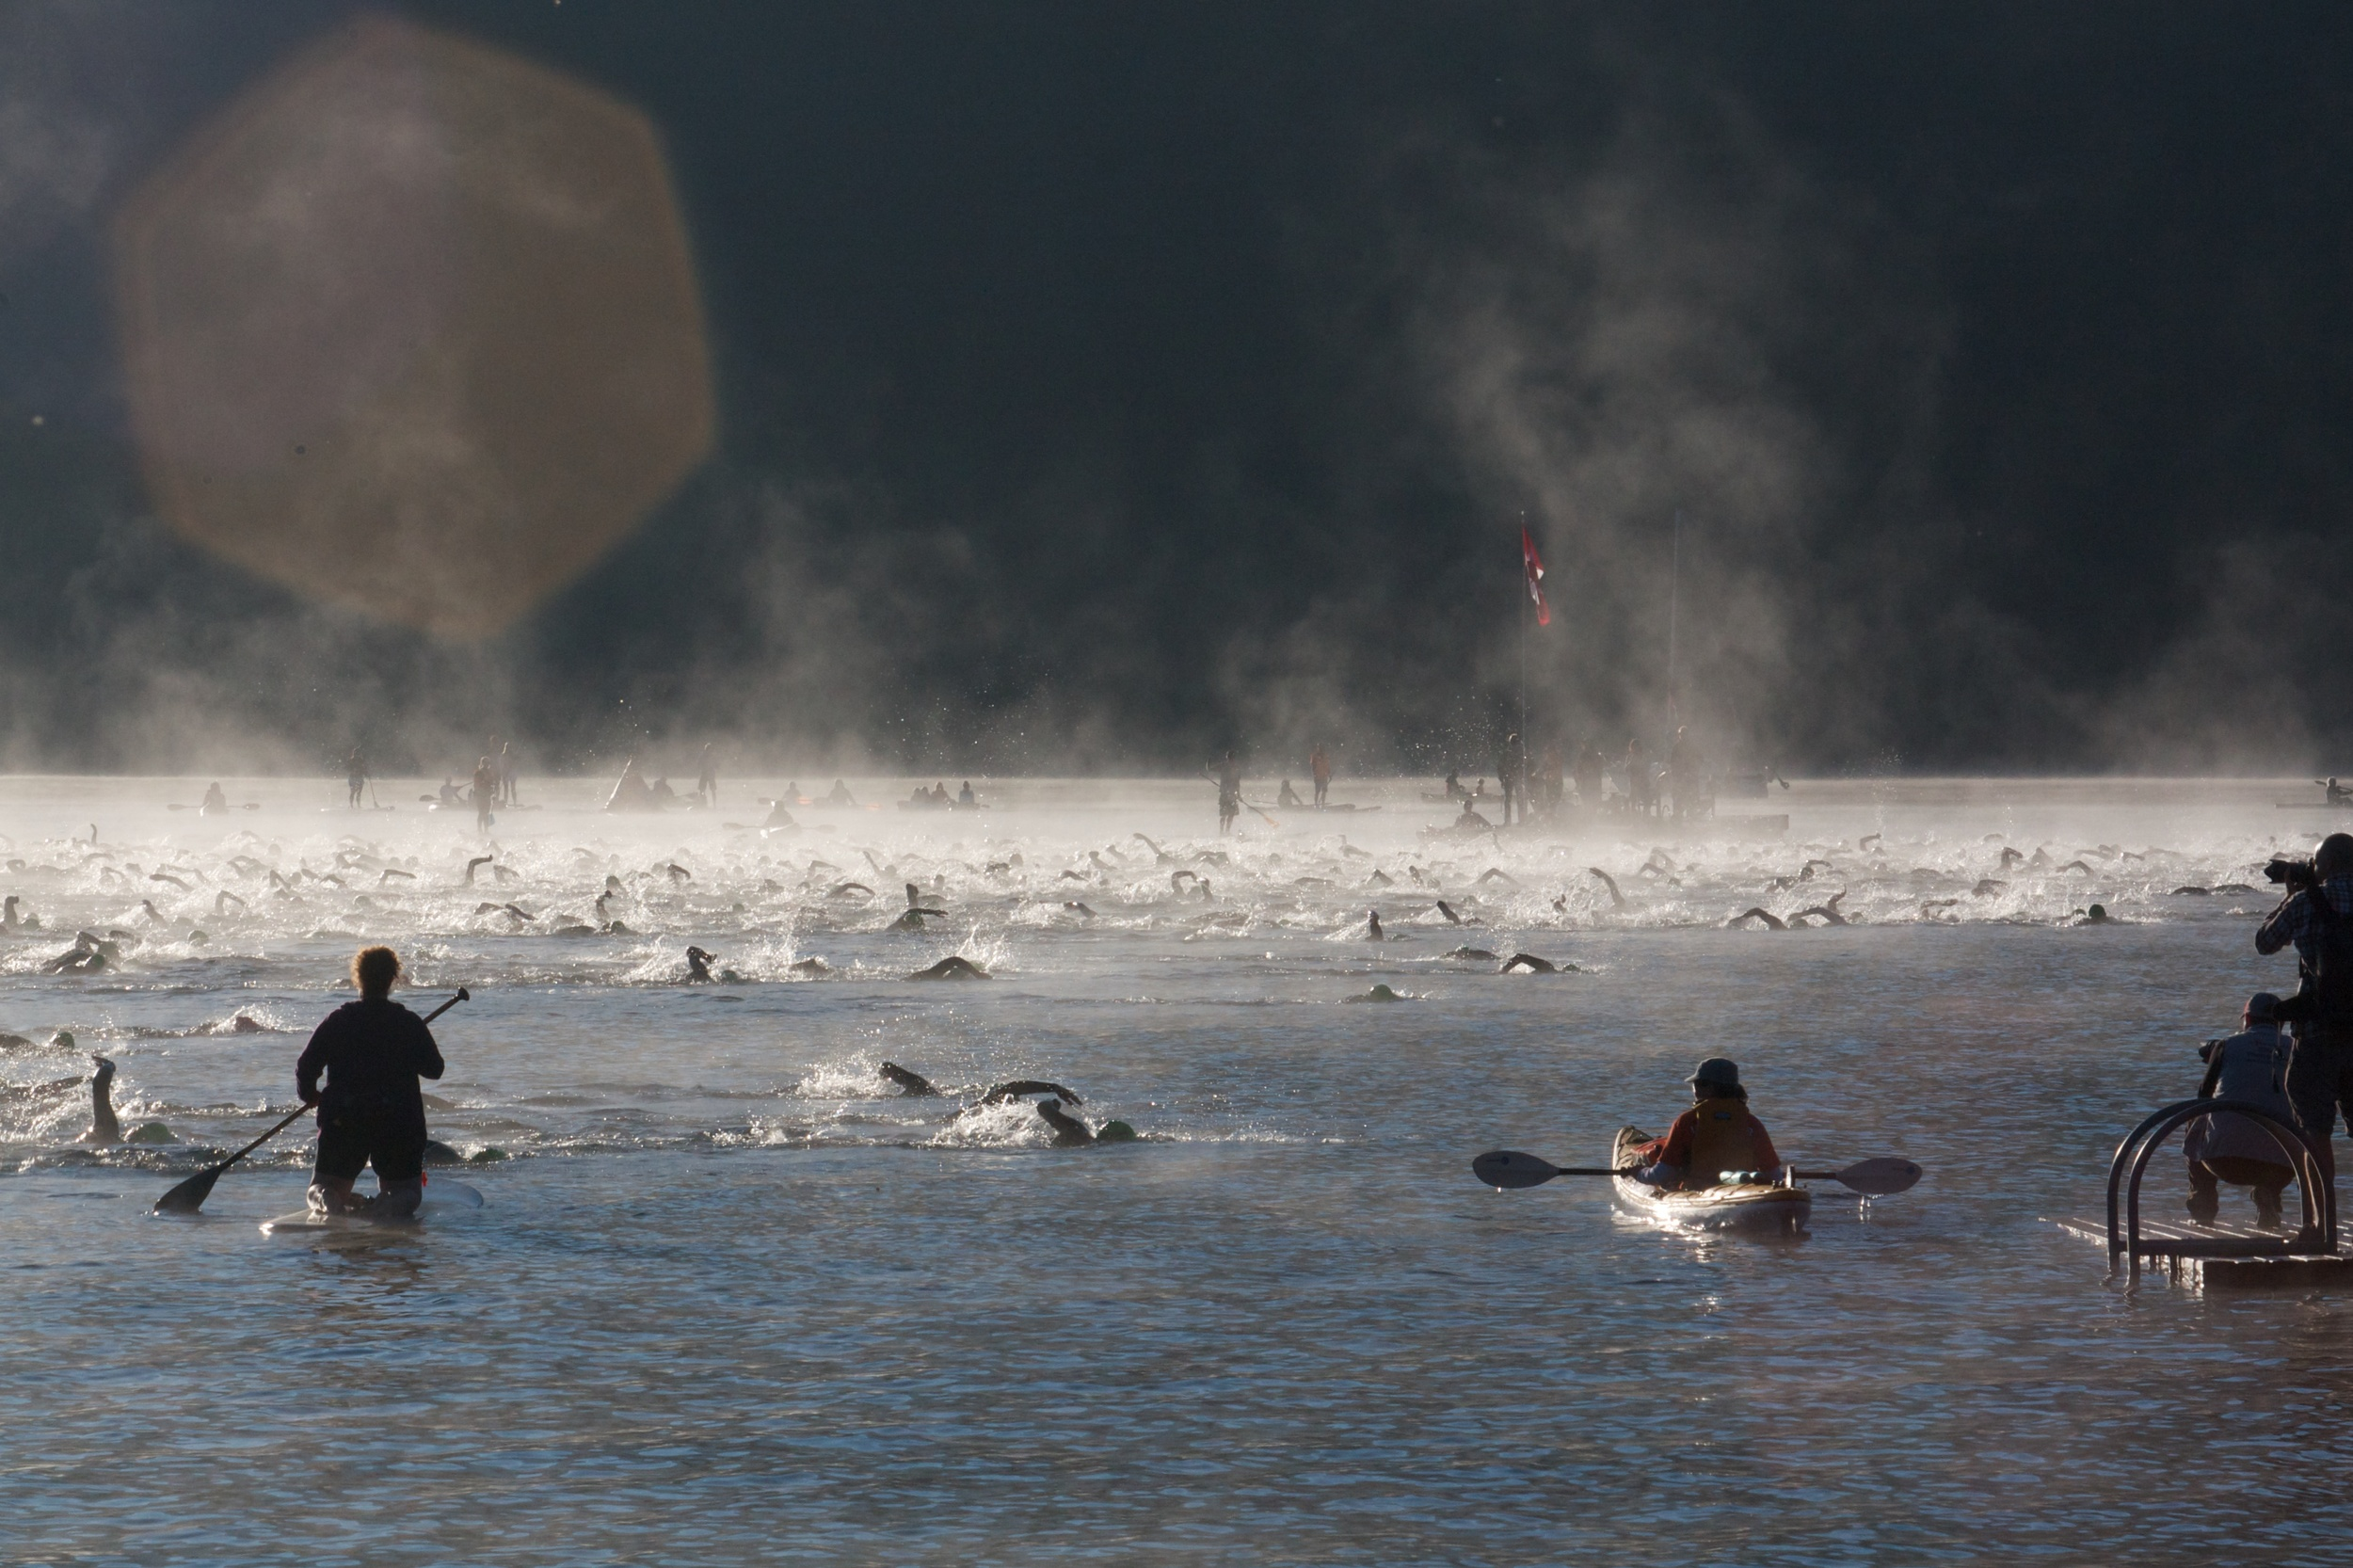 Swim start of Ironman Canada in Whistler, BC, in 2014. Big day ahead!